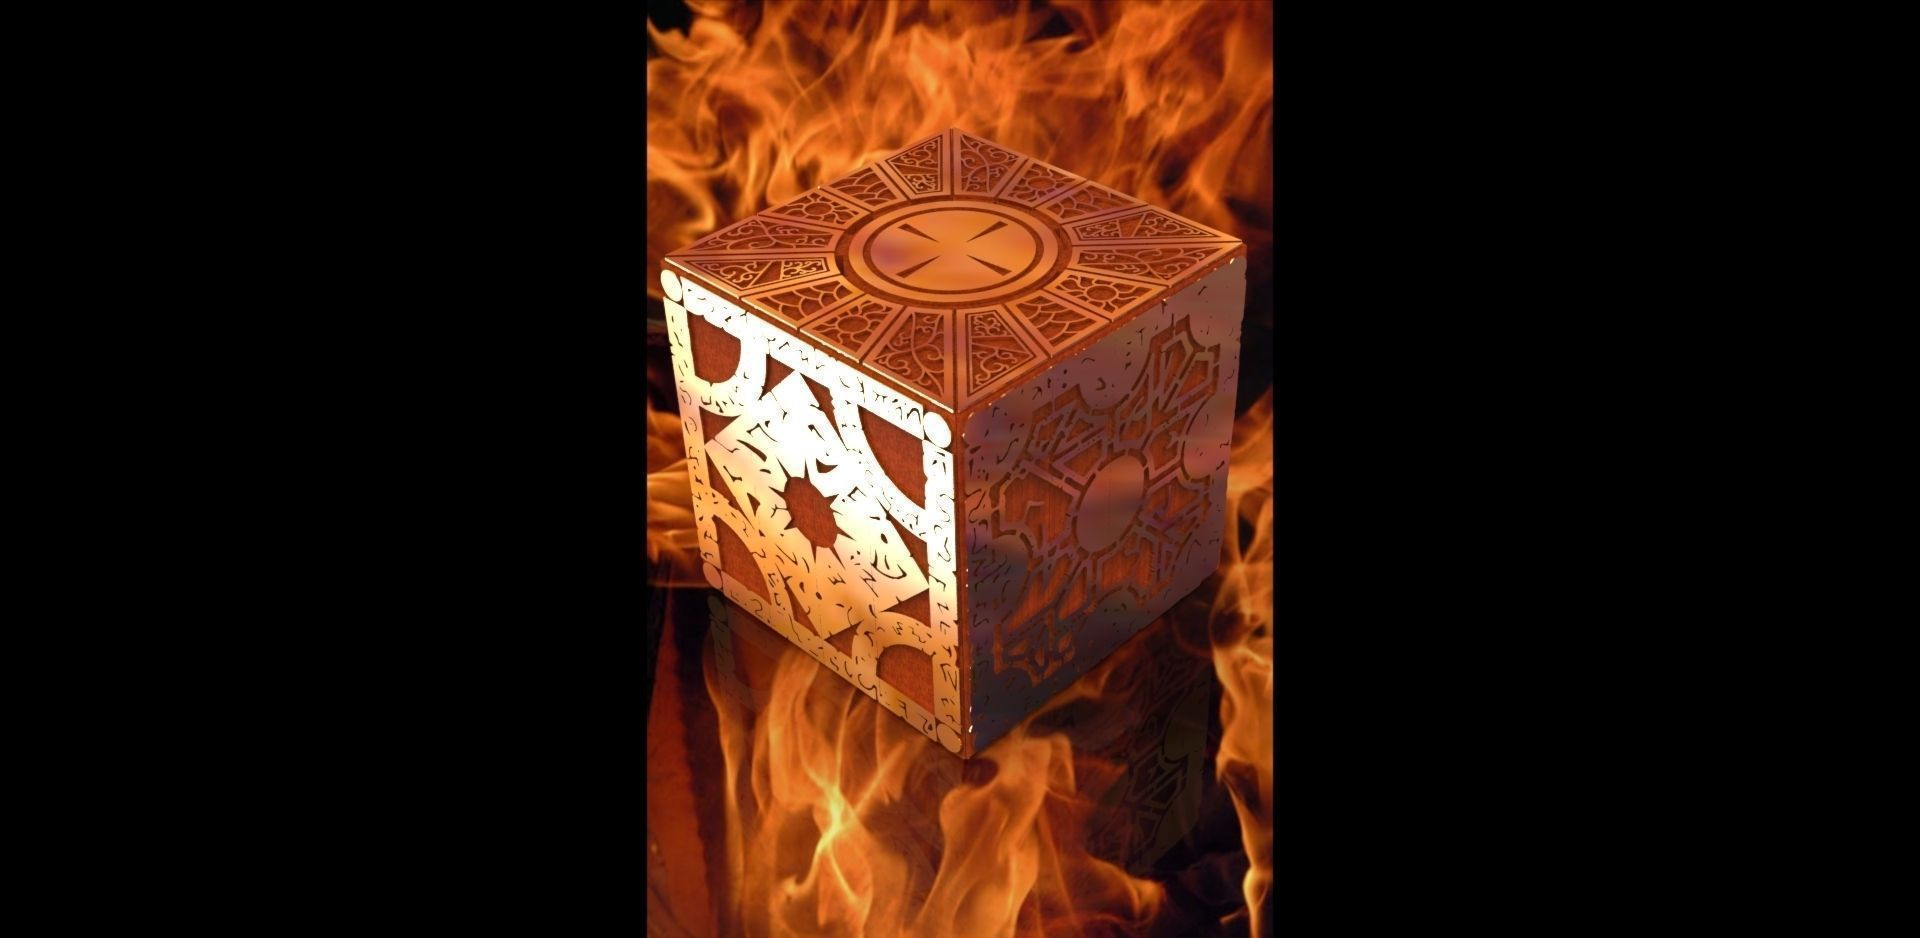 Lemarchand s box from Hellraiser Lament Configuration